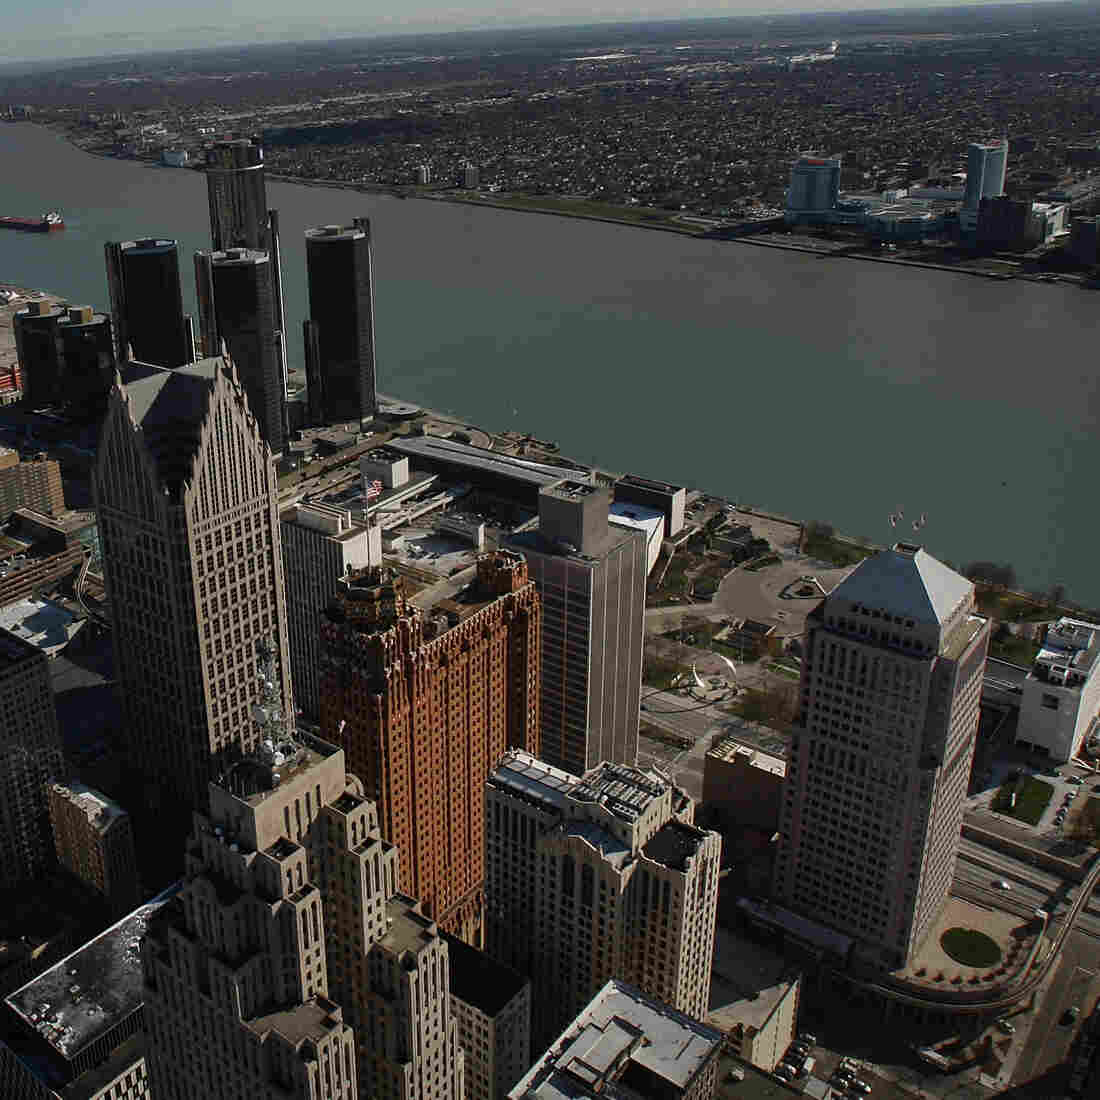 Some Detroiters think their city has gotten a bad rap.